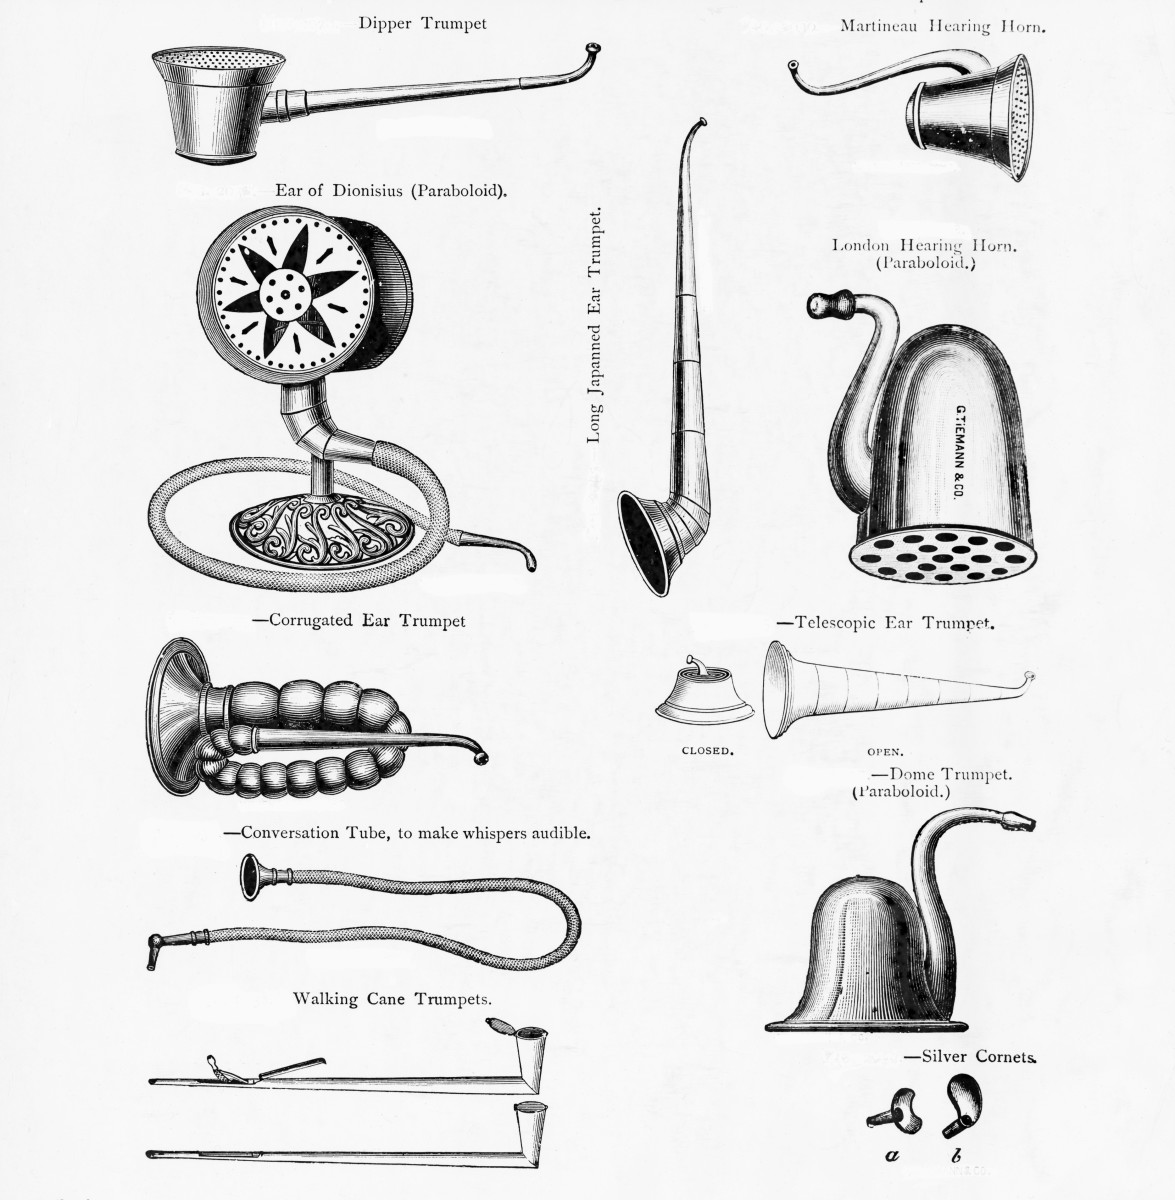 Diagrams of various ear trumpets in this undated illustration, BPA2# 1187.